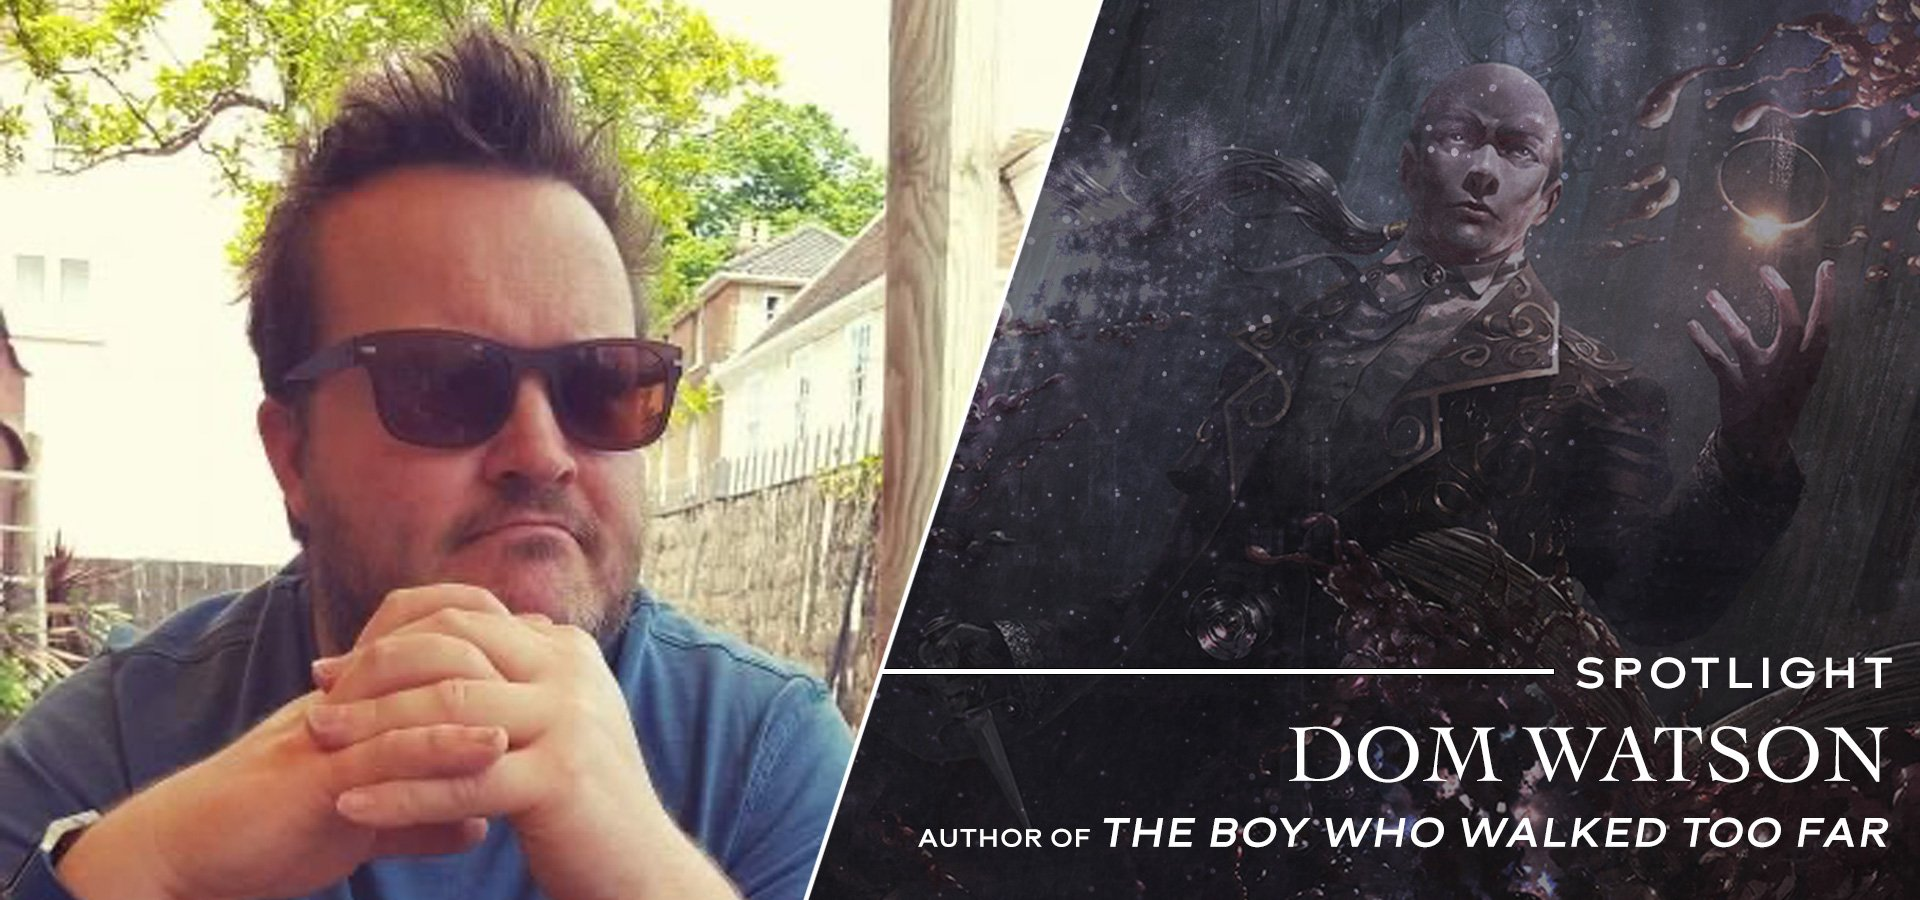 The Boy Who Walked Too Far by Dom Watson